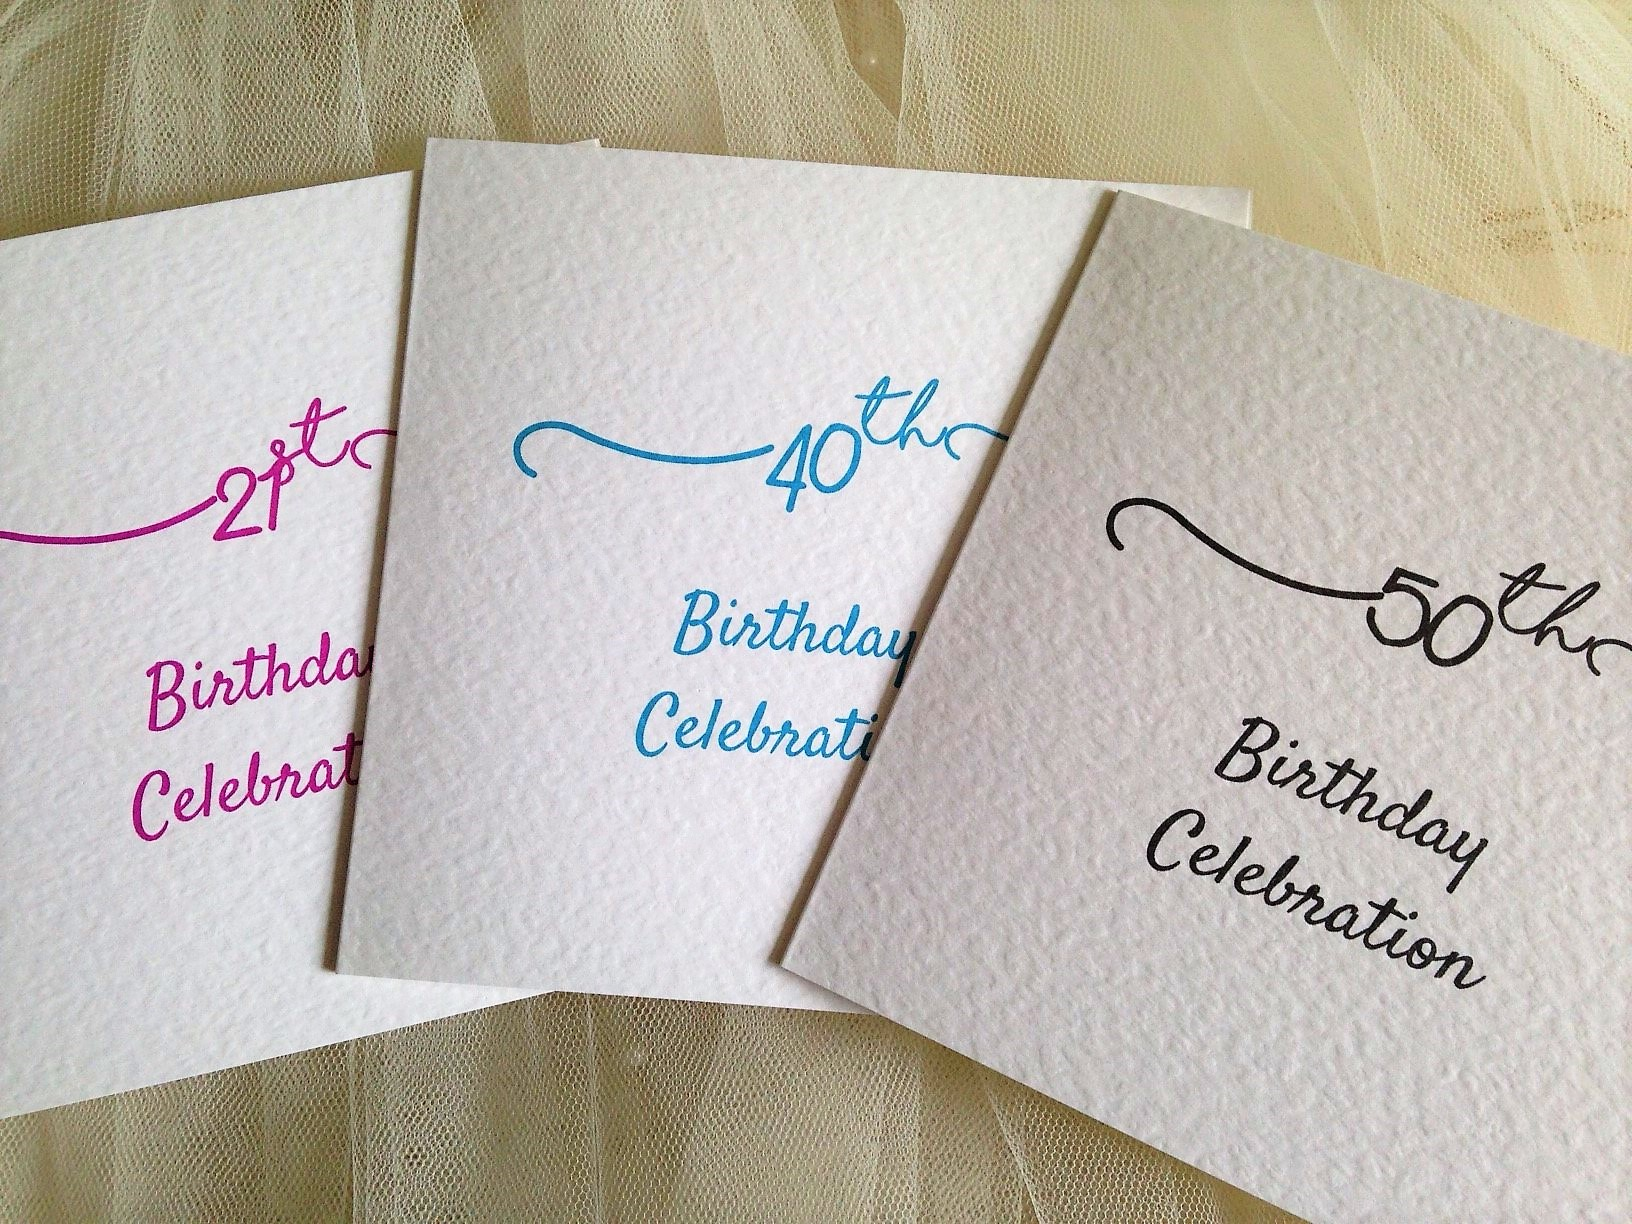 Wedding invitations wedding stationery affordable prices party invitations monicamarmolfo Gallery